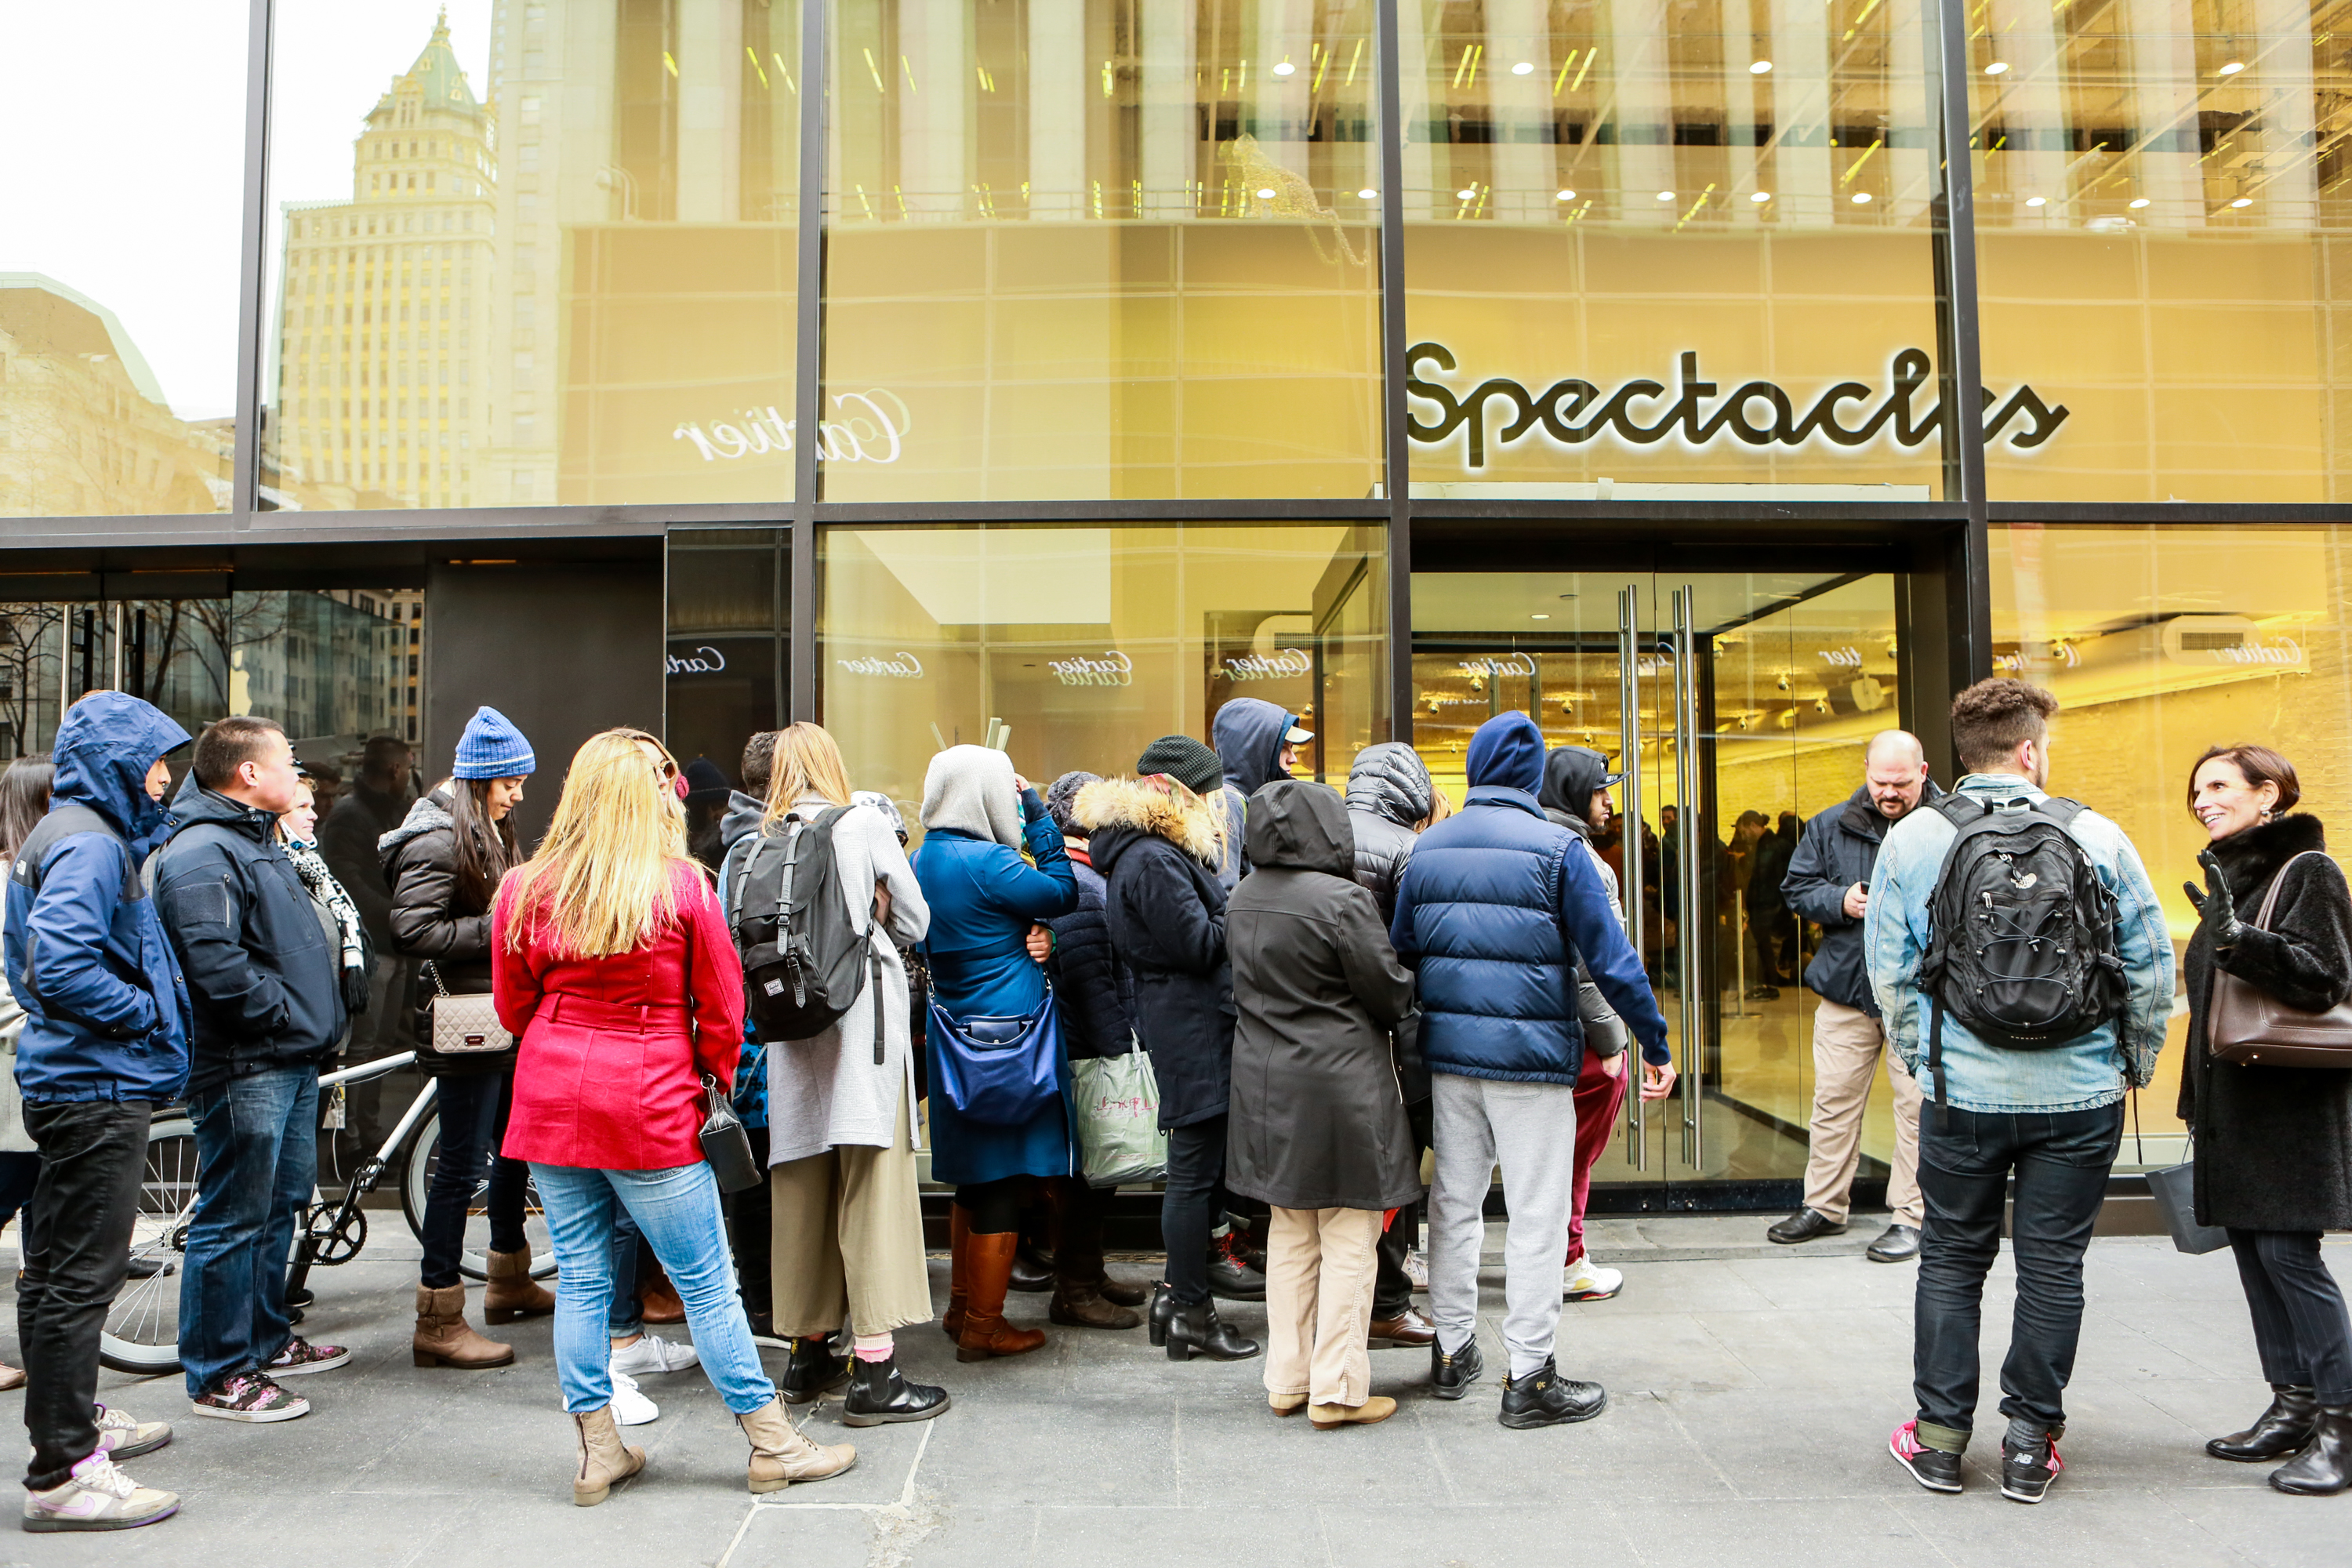 spectacles-purchase-nyc-nov-21-02.jpg